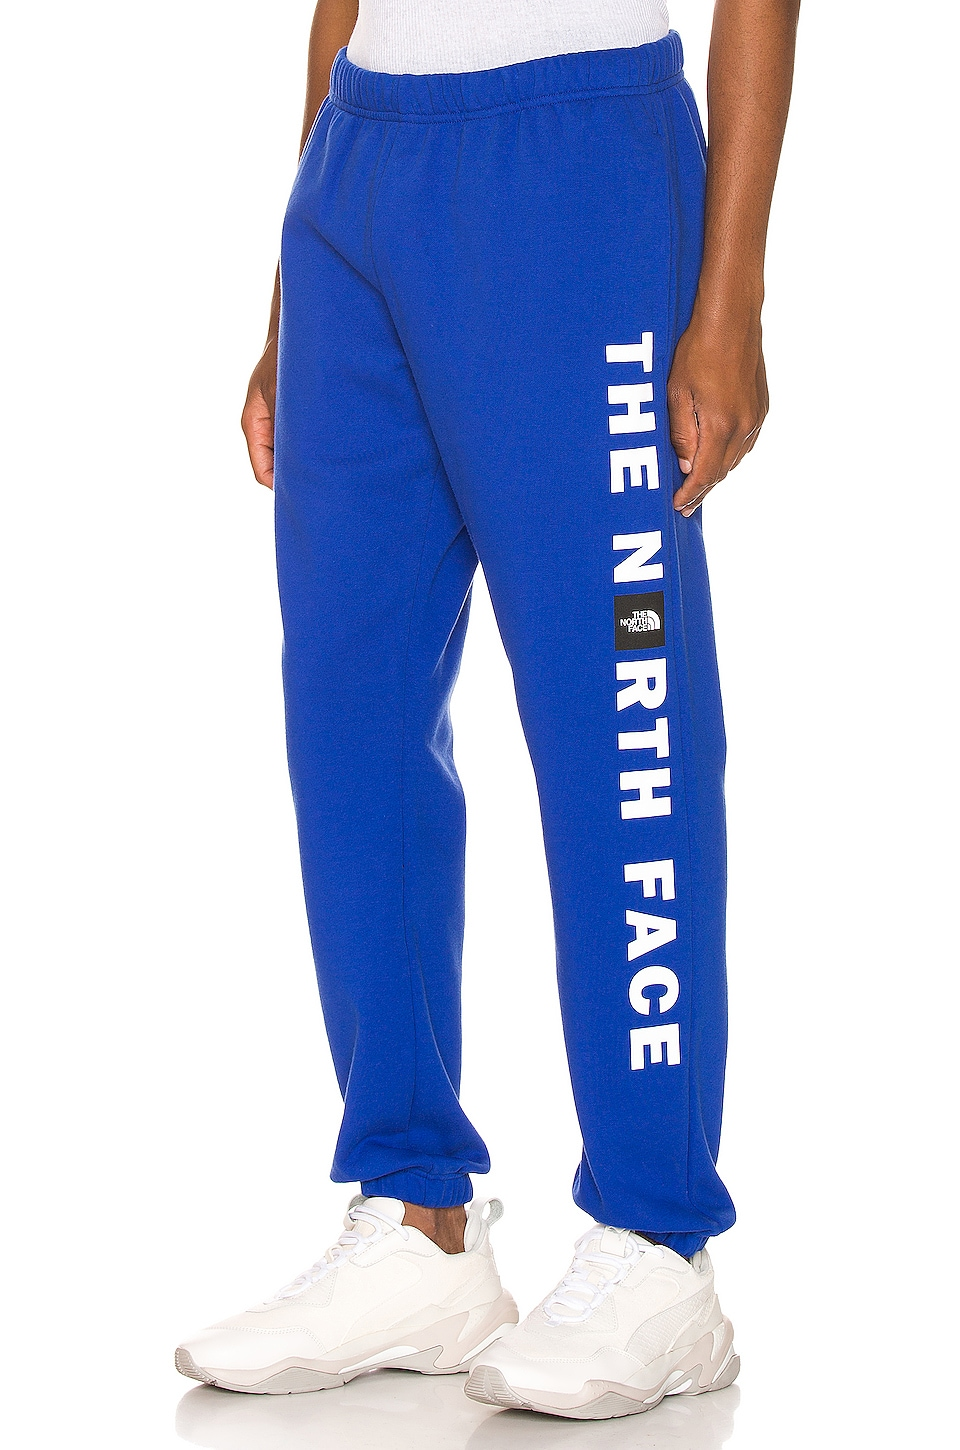 The North Face Unisex Vertical Sweatpant